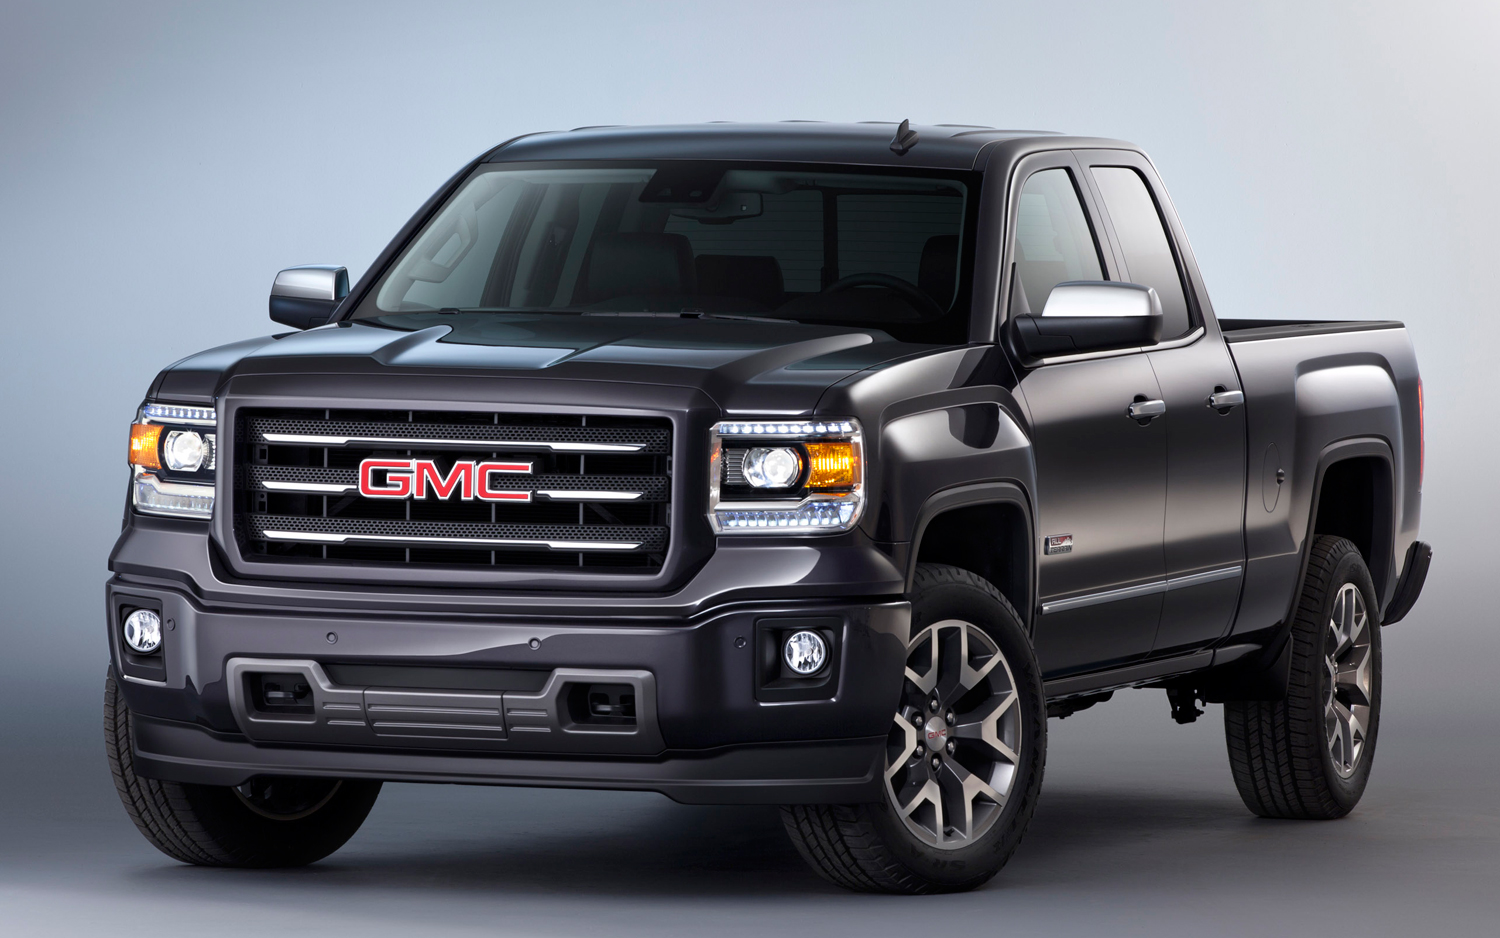 Gmc body photo - 2